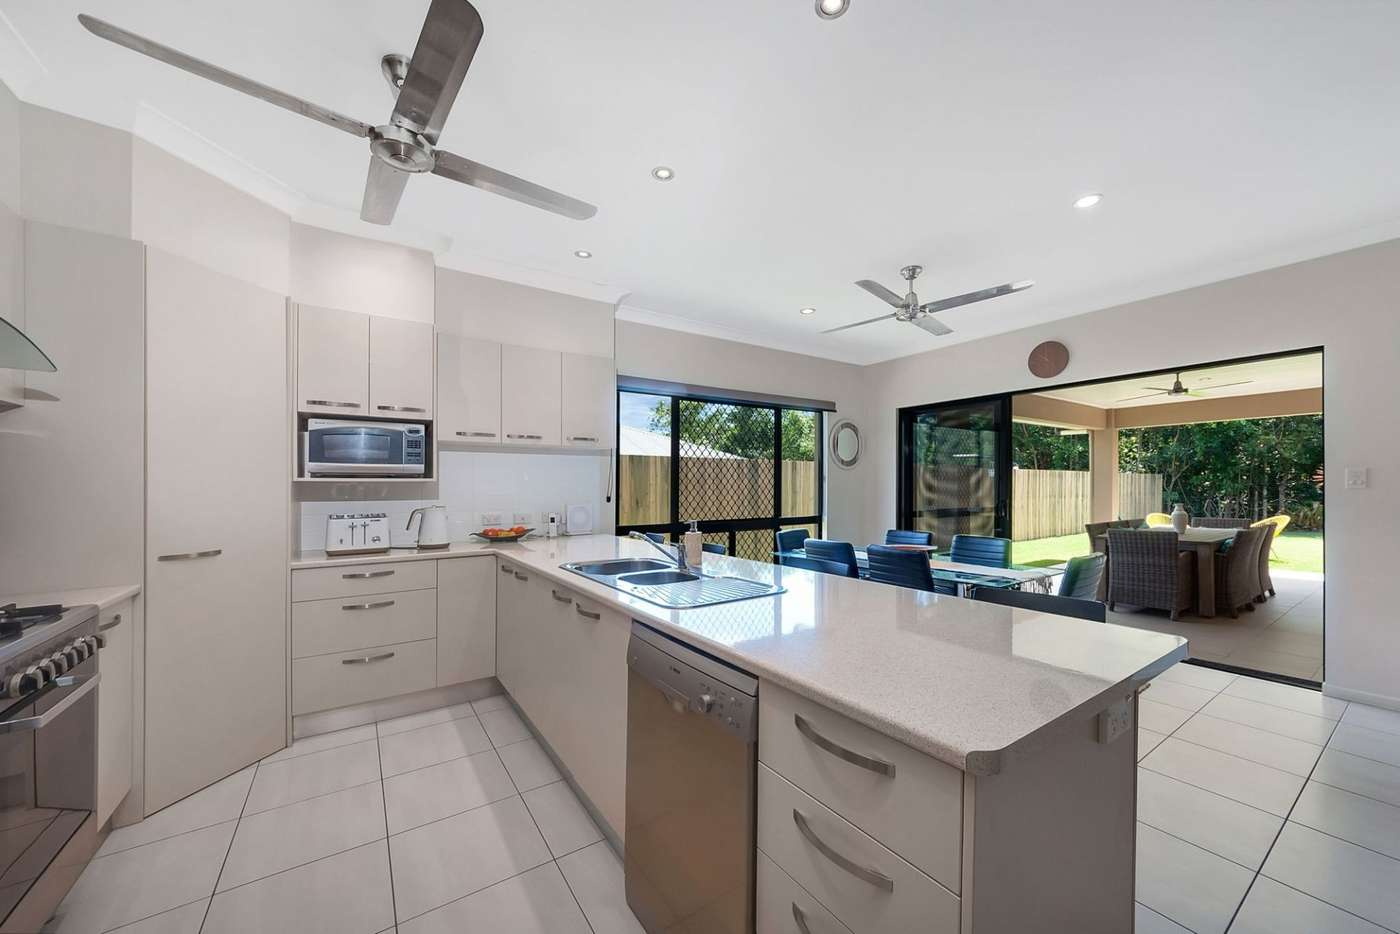 Main view of Homely house listing, 11 Willoughby Close, Redlynch QLD 4870